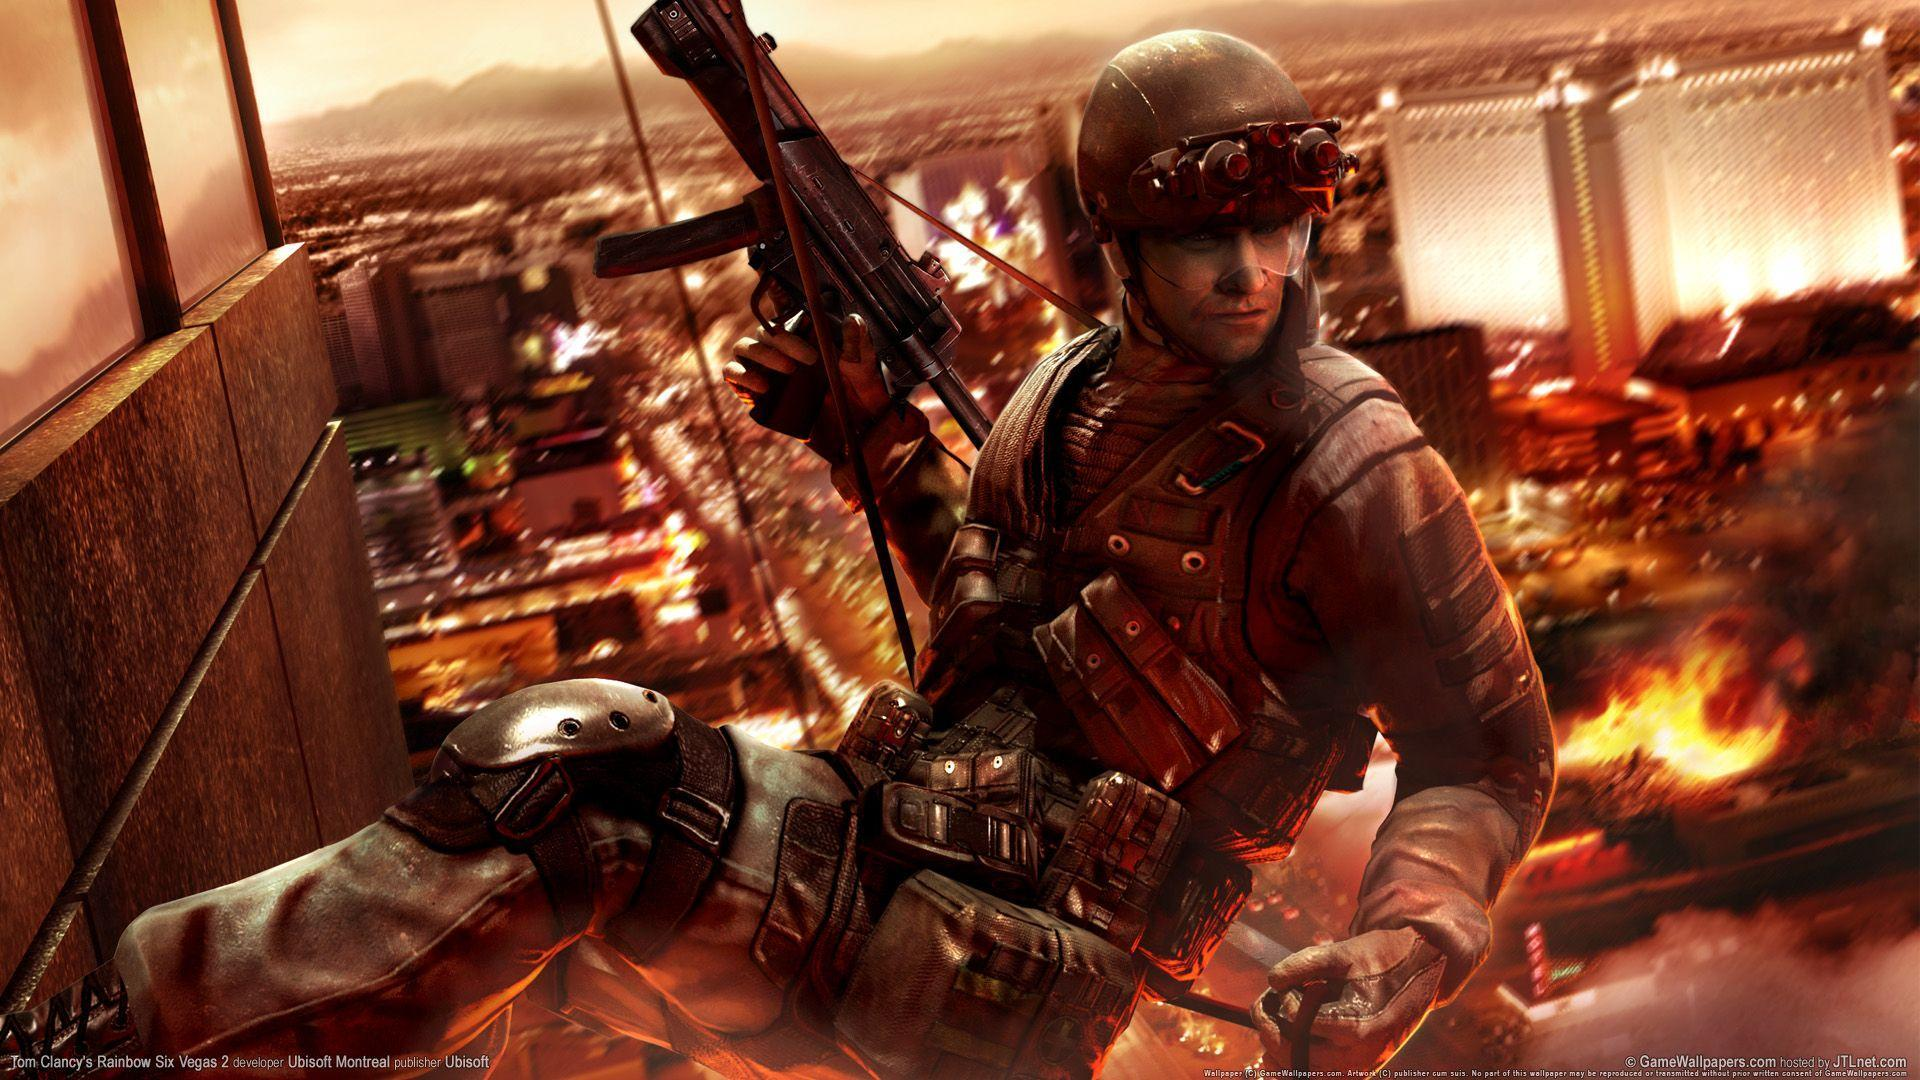 Tom clancys rainbow six vegas Wallpapers | HD Wallpapers